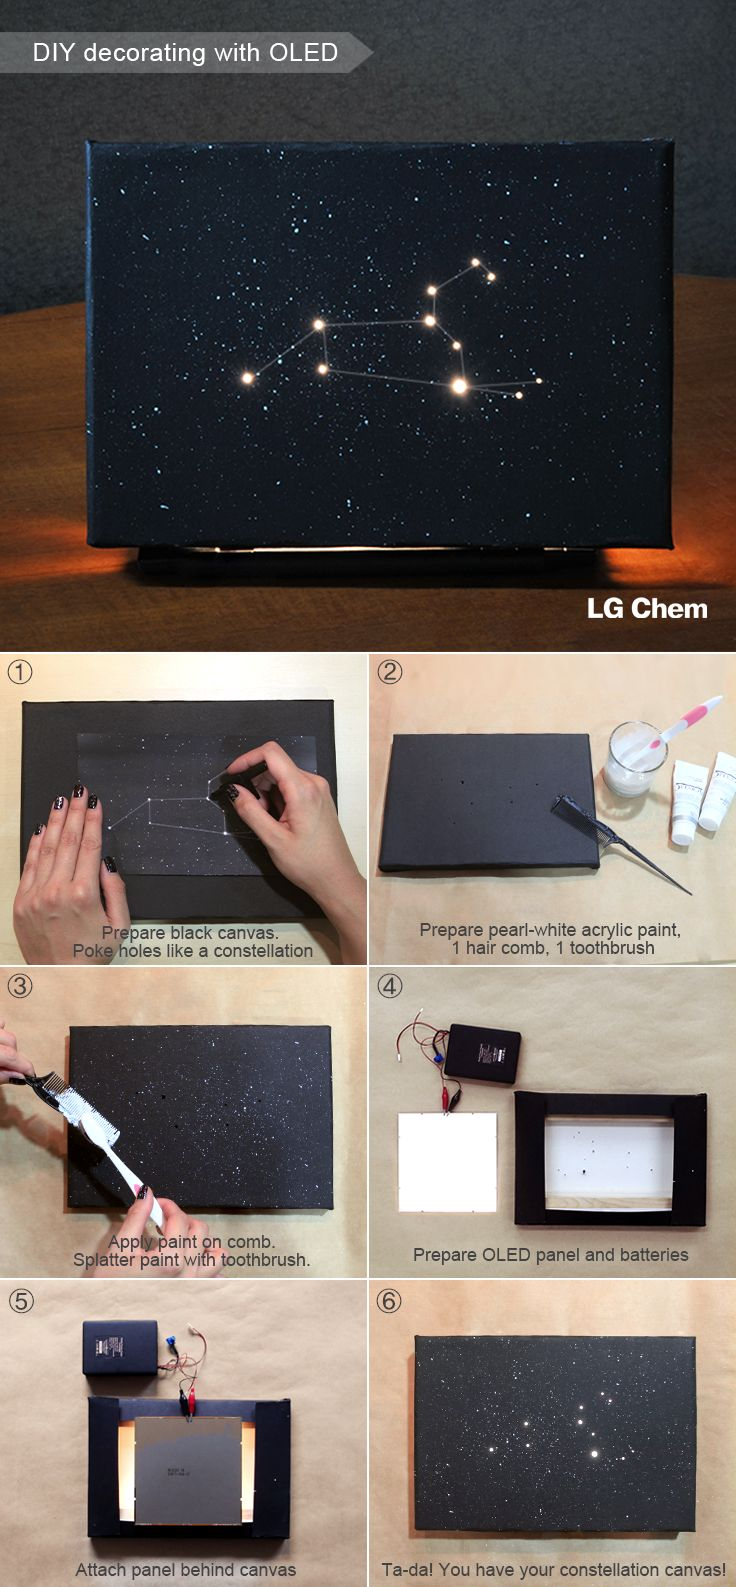 How to make your own zodiac sign using LG Display OLED light panel (Image: Leo). Check out Organic Lights at http://www.organic-lights.com/en/lg-display-do-it-yourself-kit.html